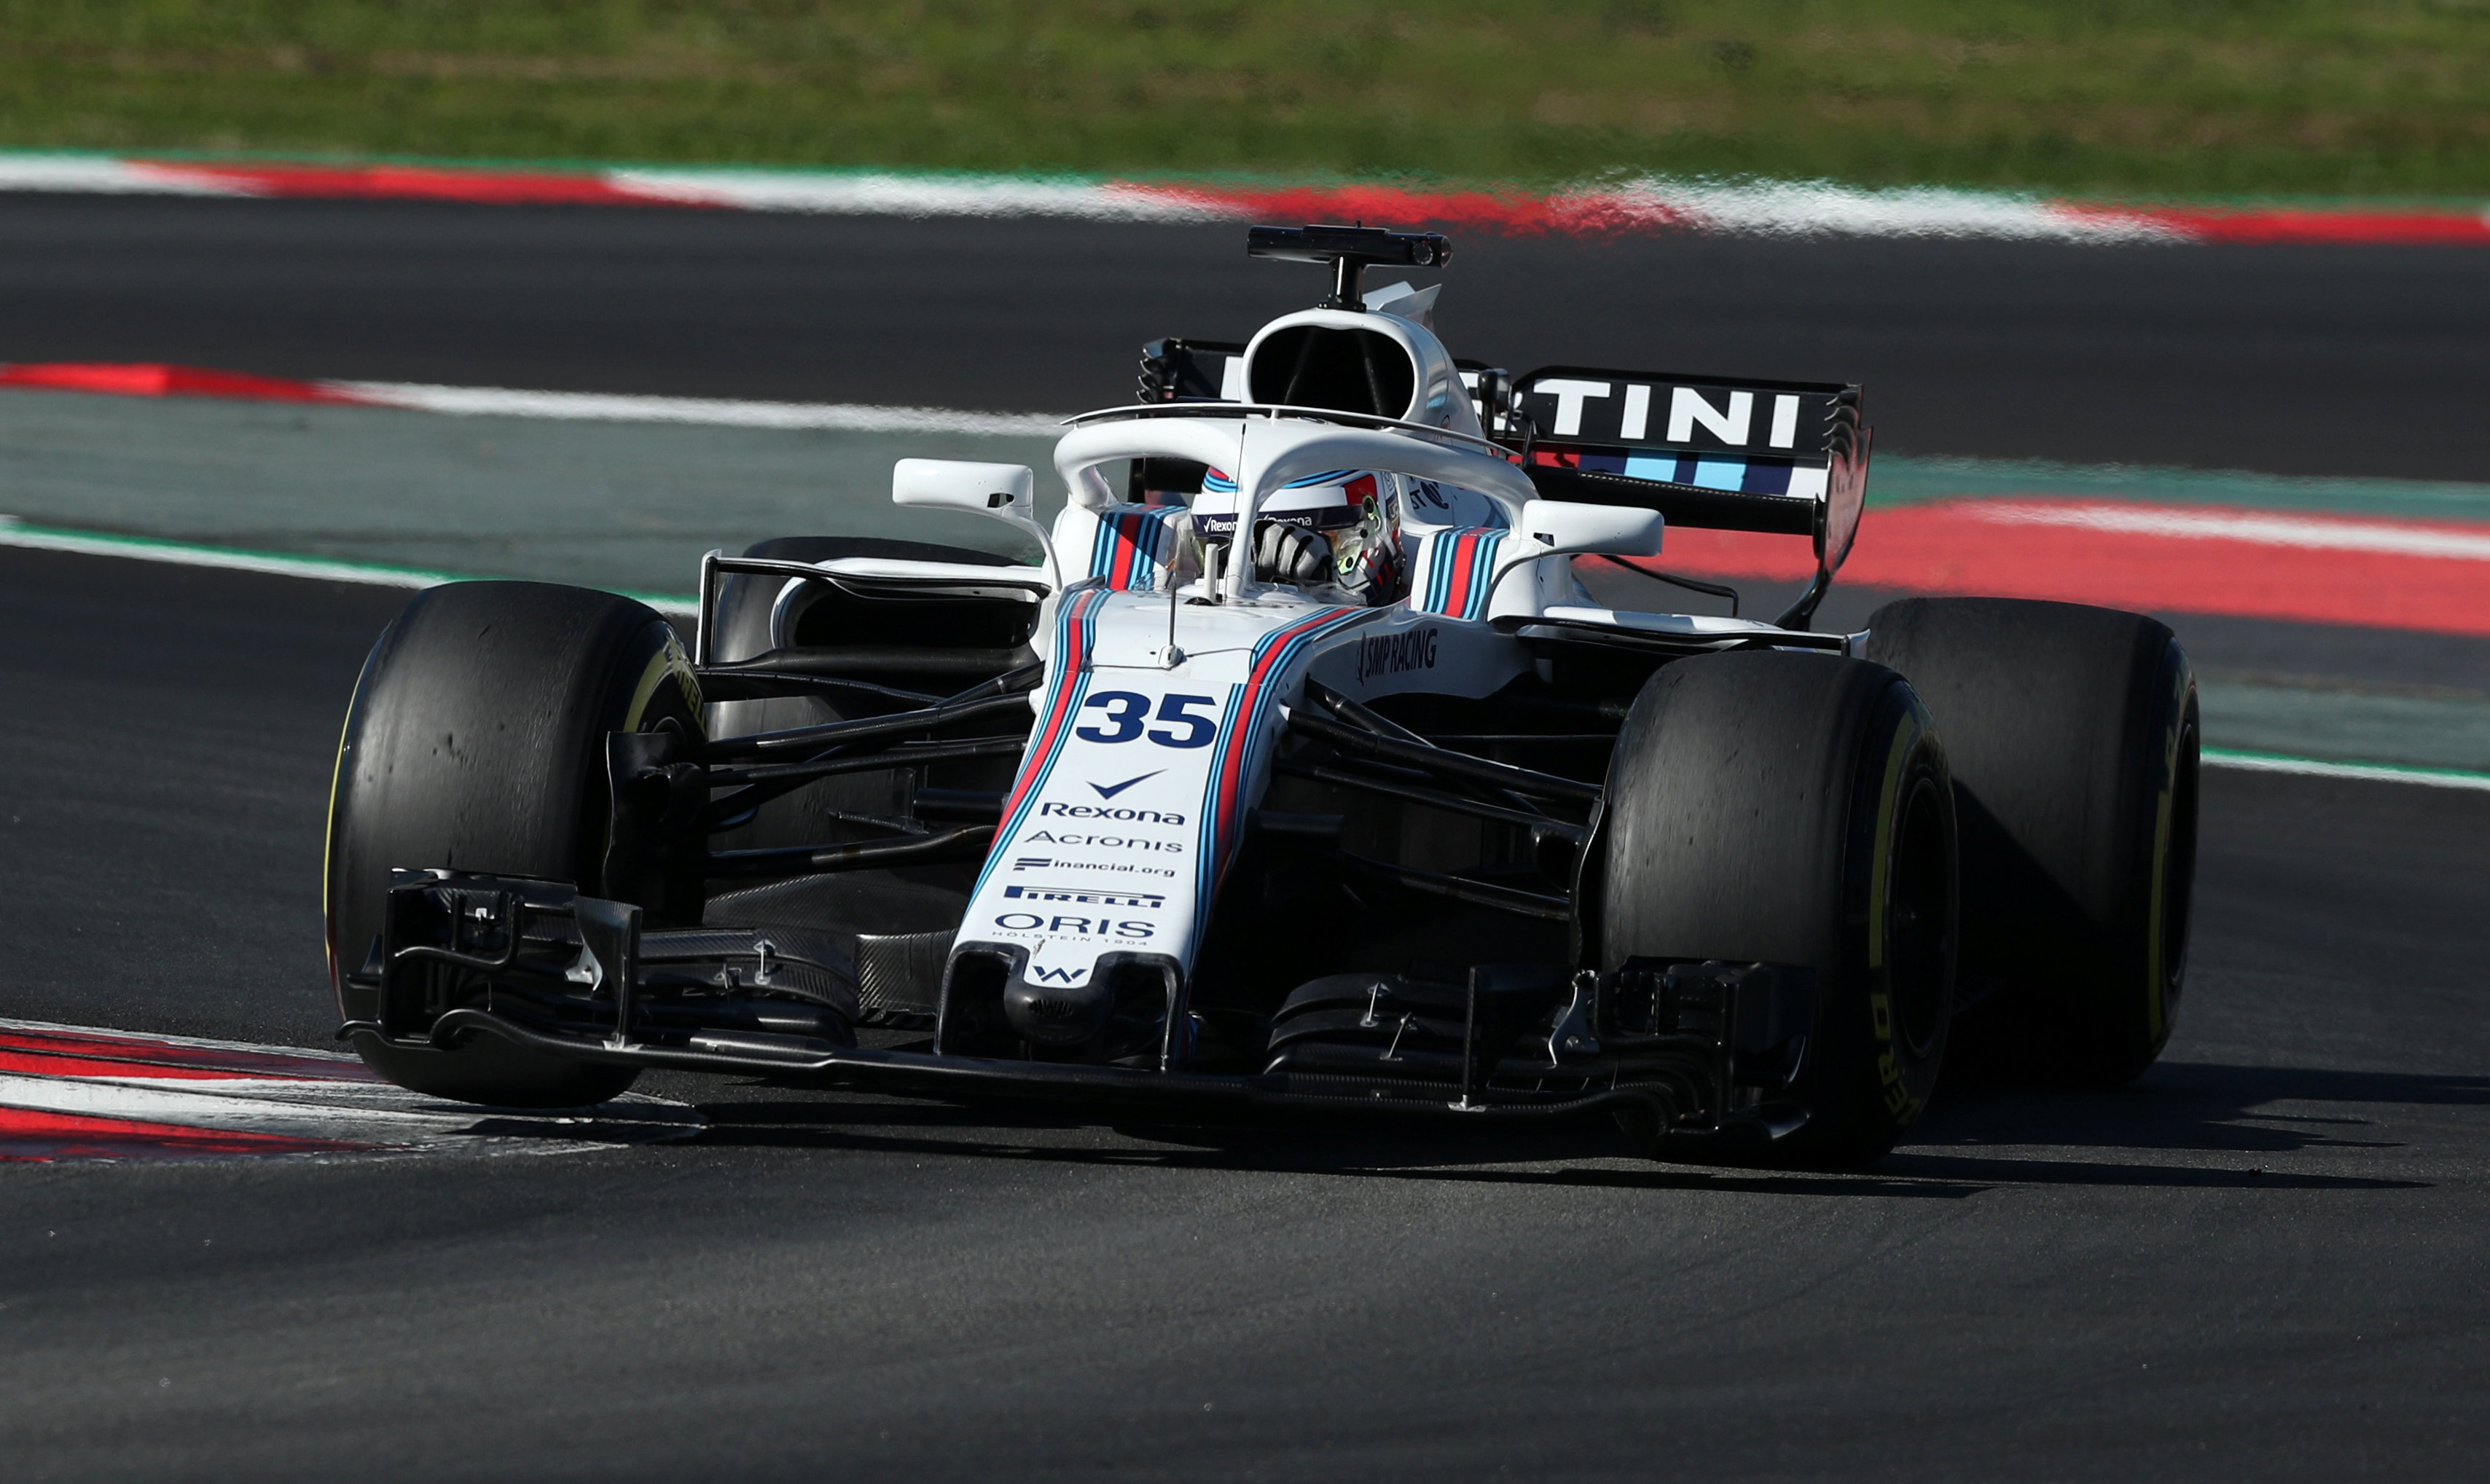 f1 williams 39 paddy lowe defends sergey sirotkin he 39 s the best choice for us sputnik. Black Bedroom Furniture Sets. Home Design Ideas